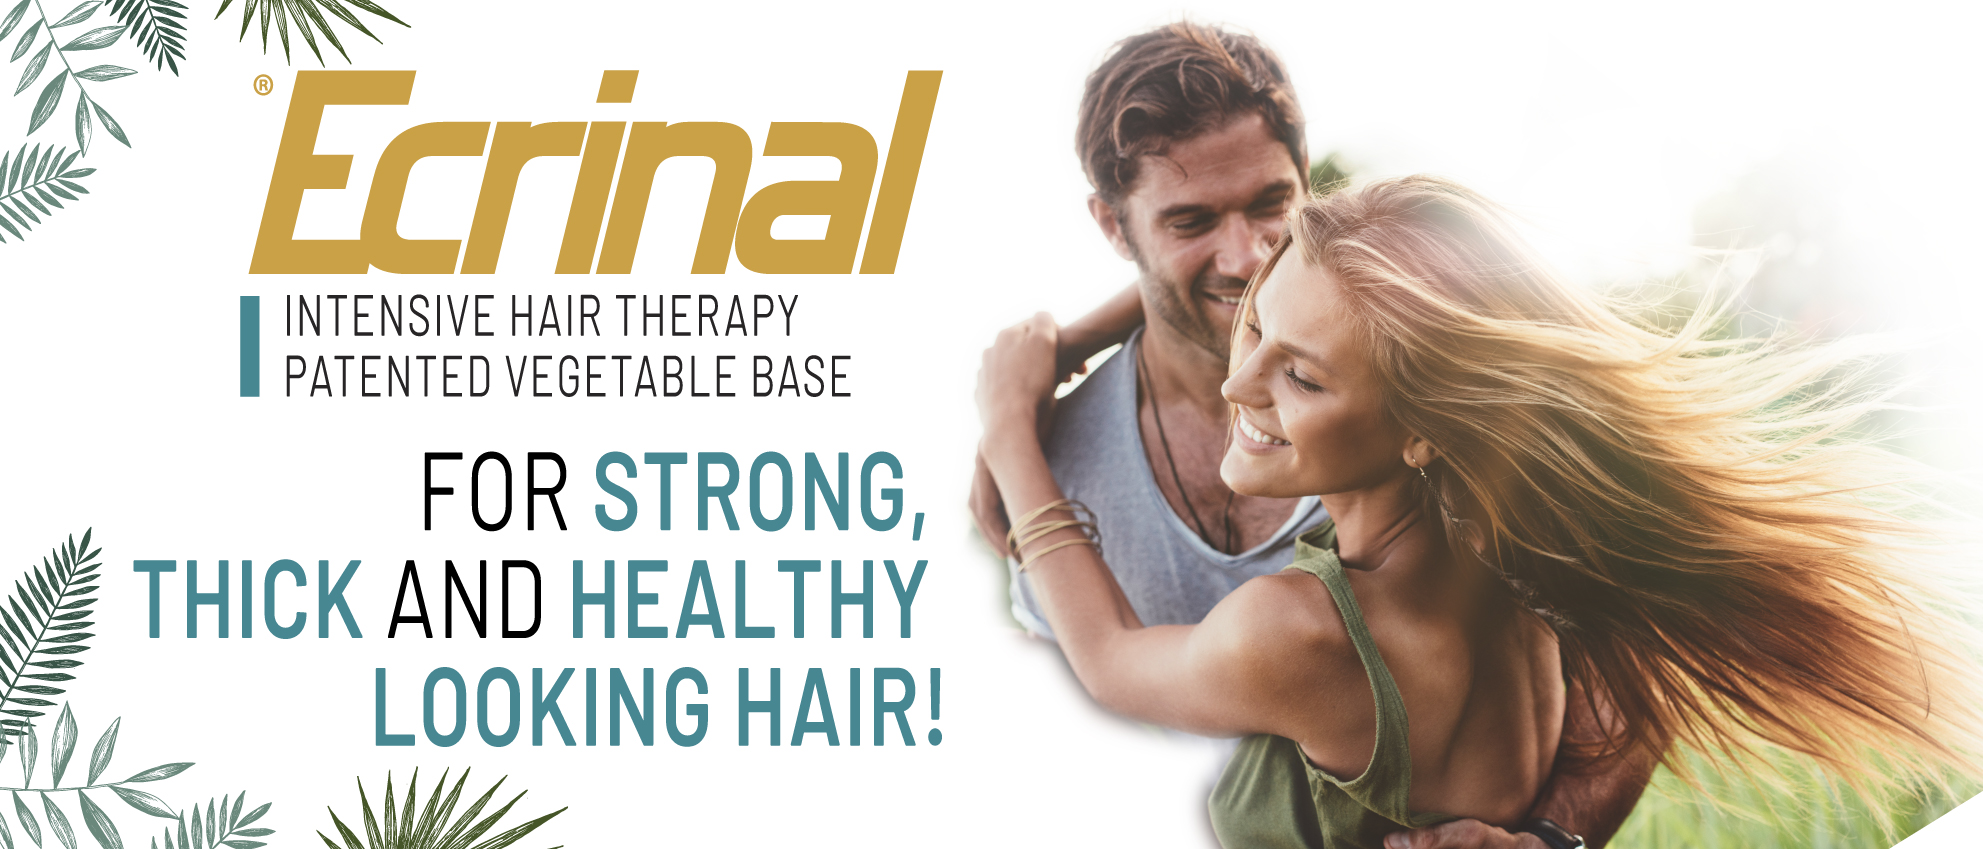 Ecrinal 50 years of Hair Treatment